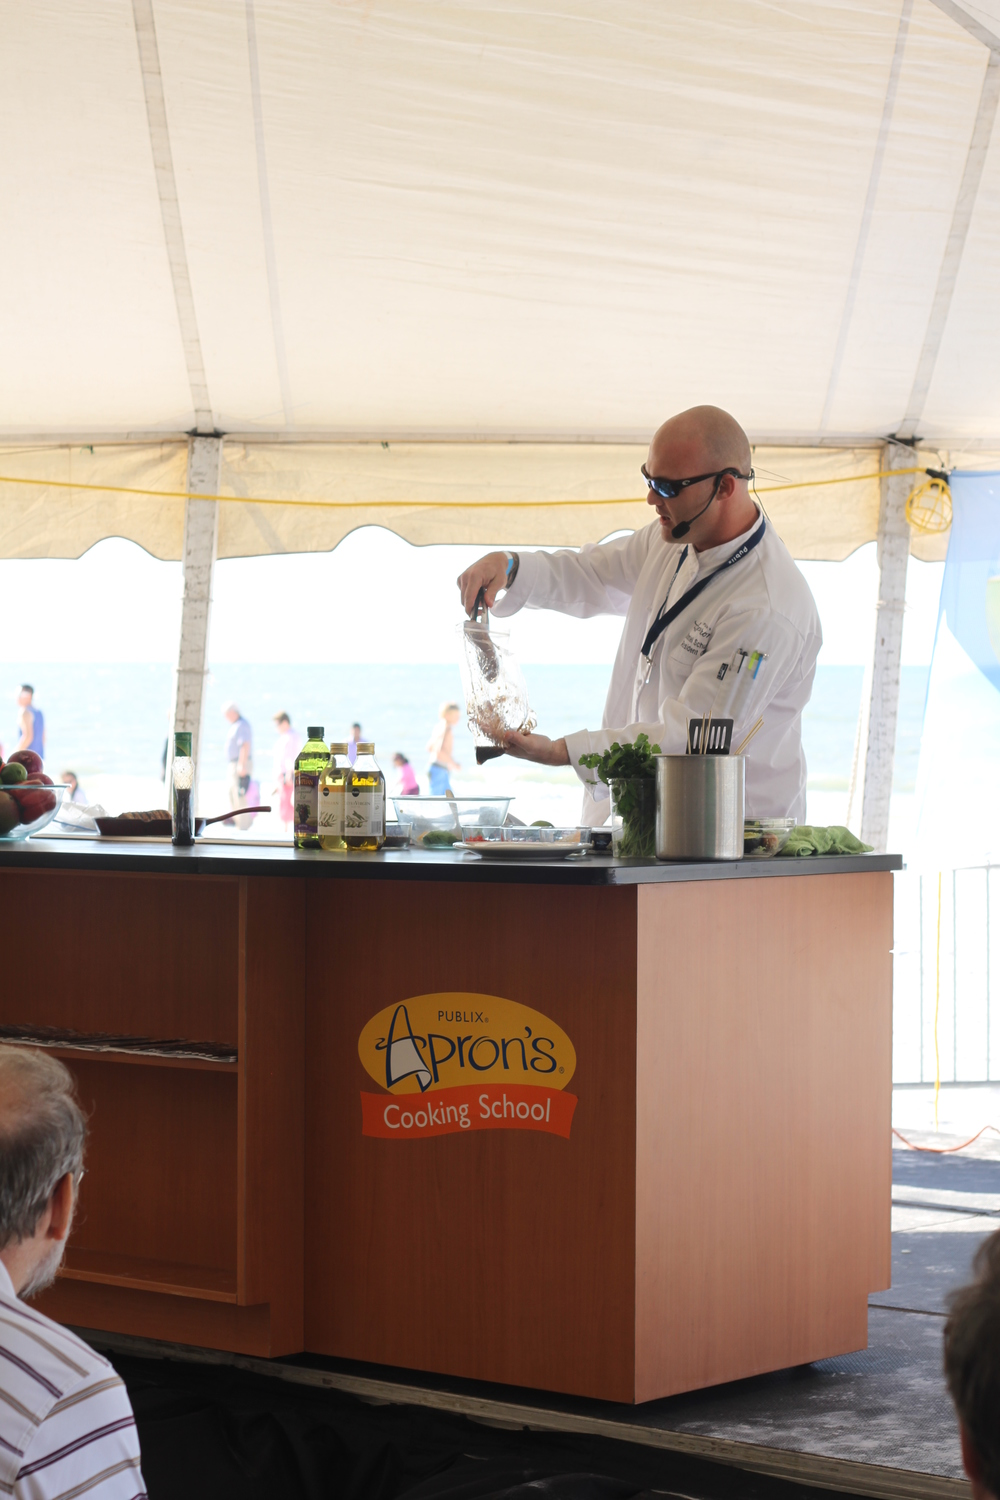 Publix Apron's Live Cooking Demonstrations